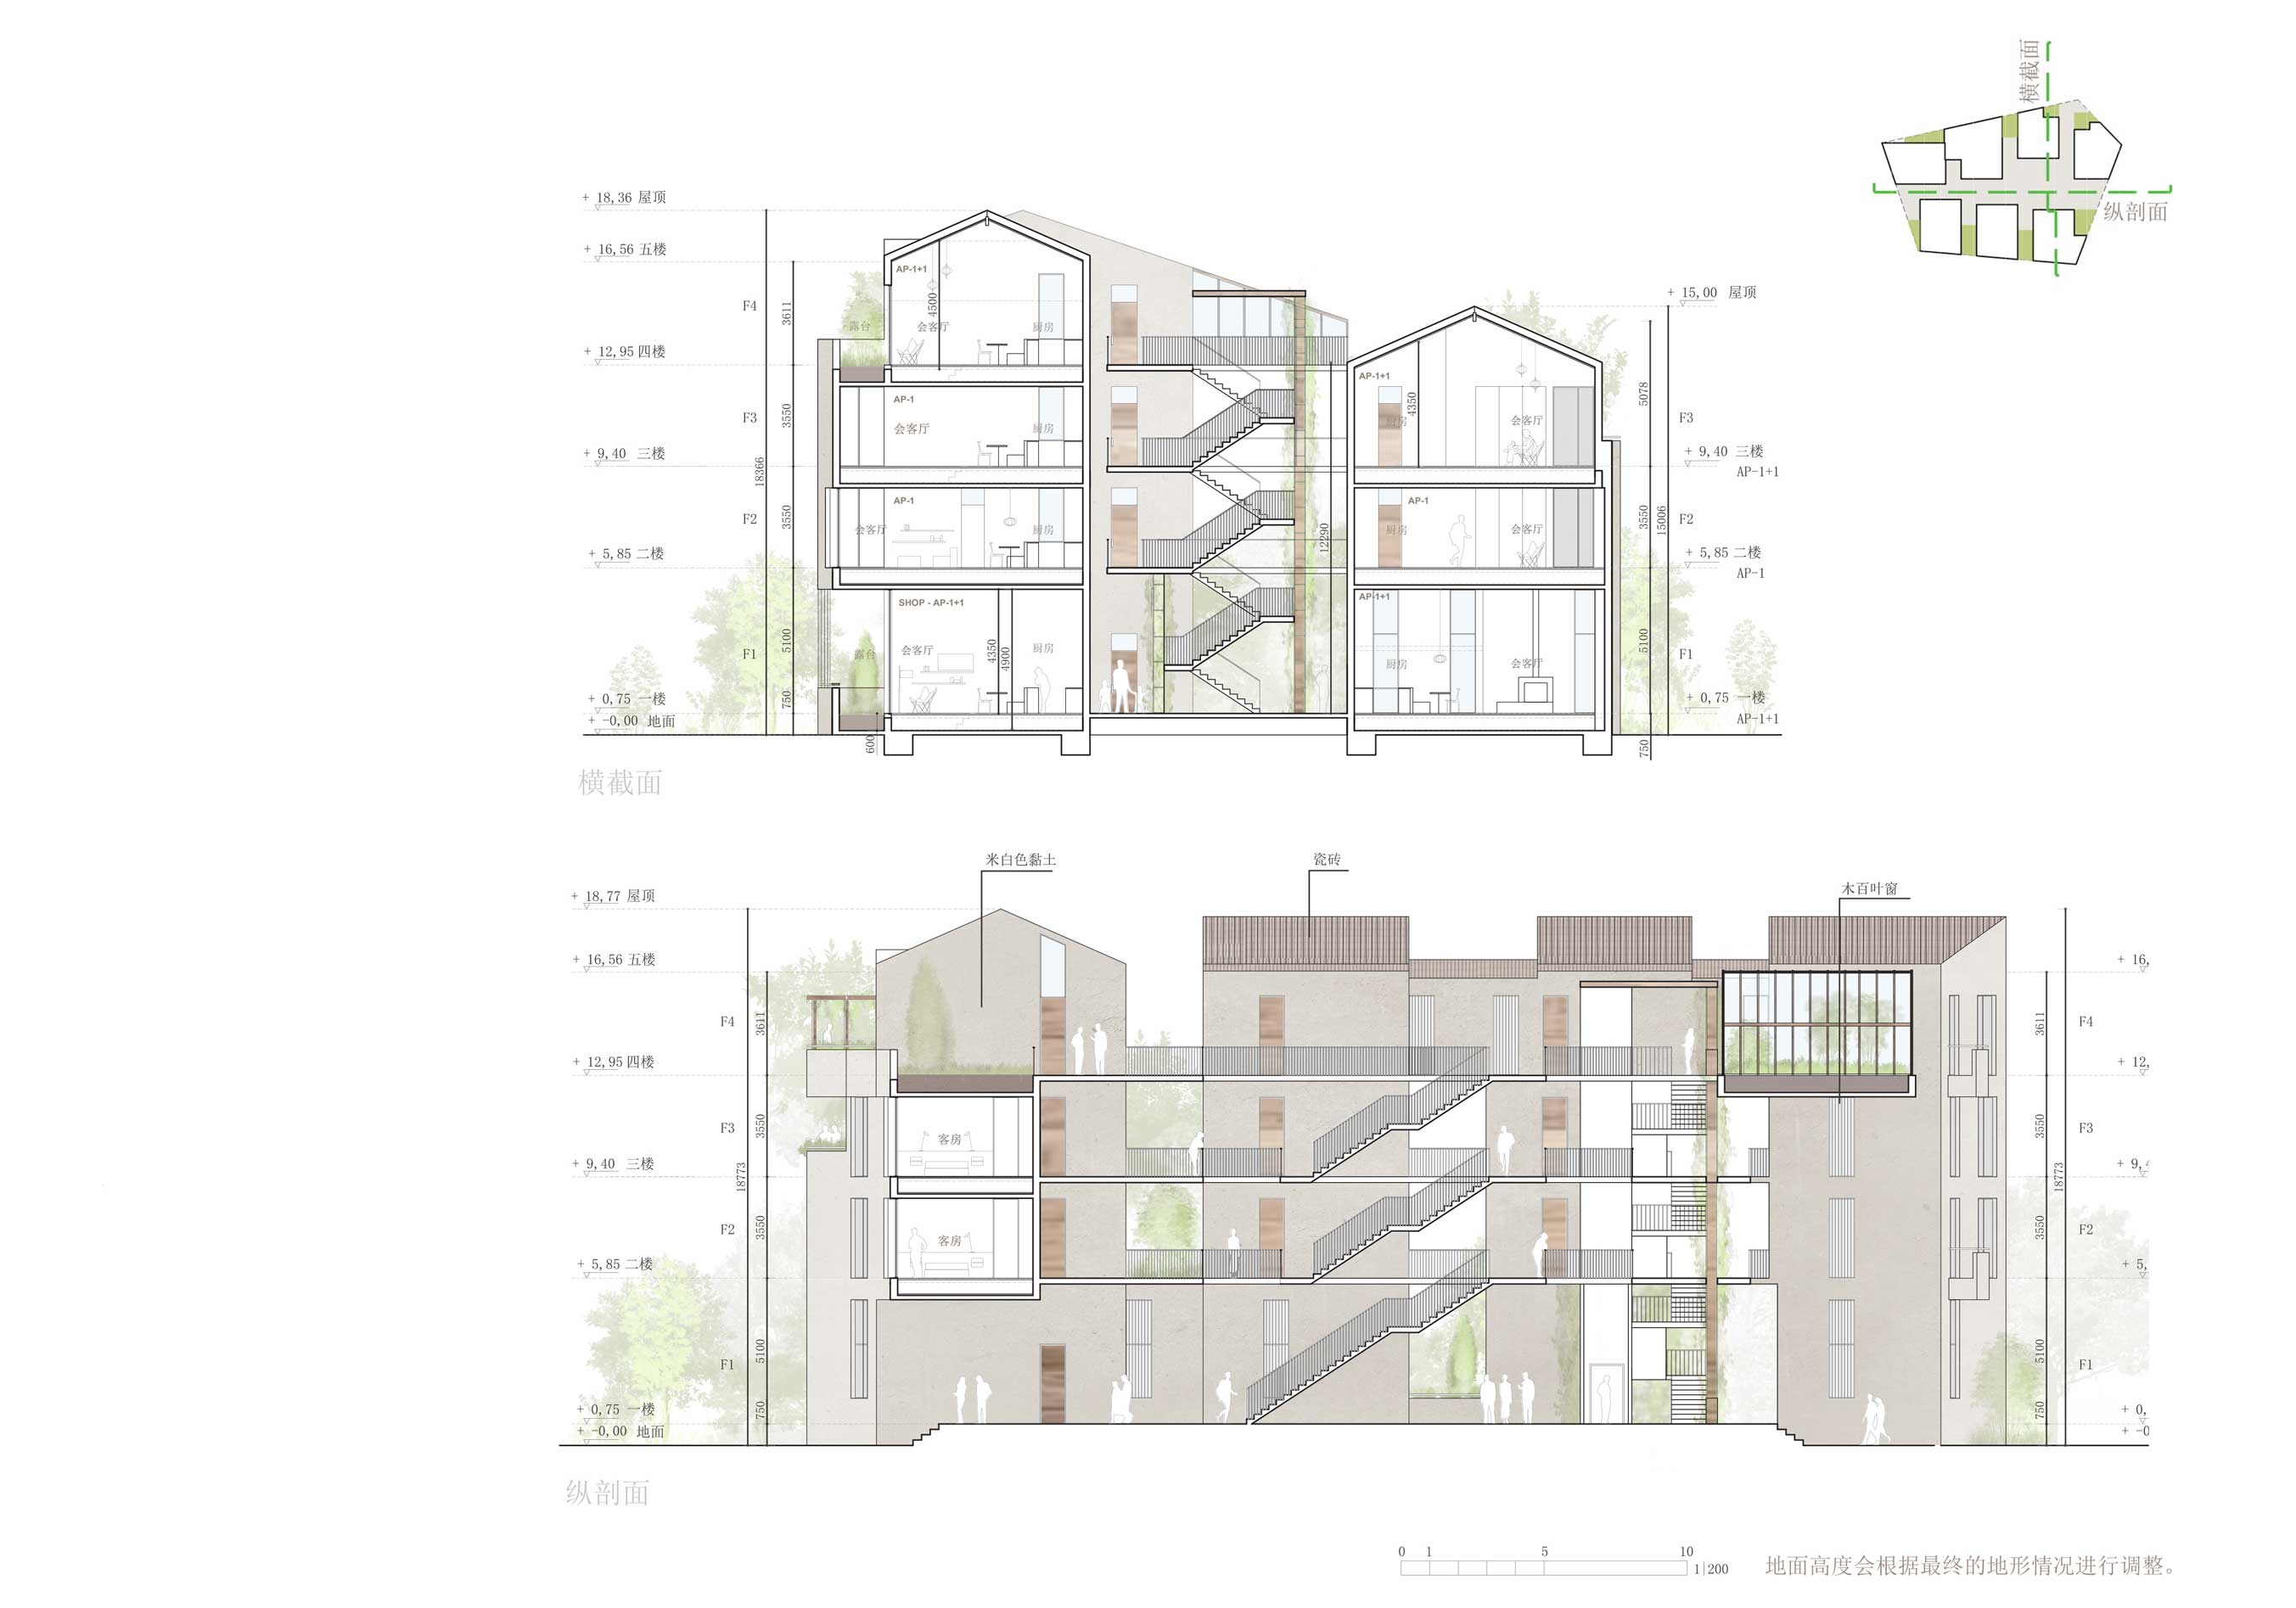 Residencial Old Town 2 en Yantai (China)